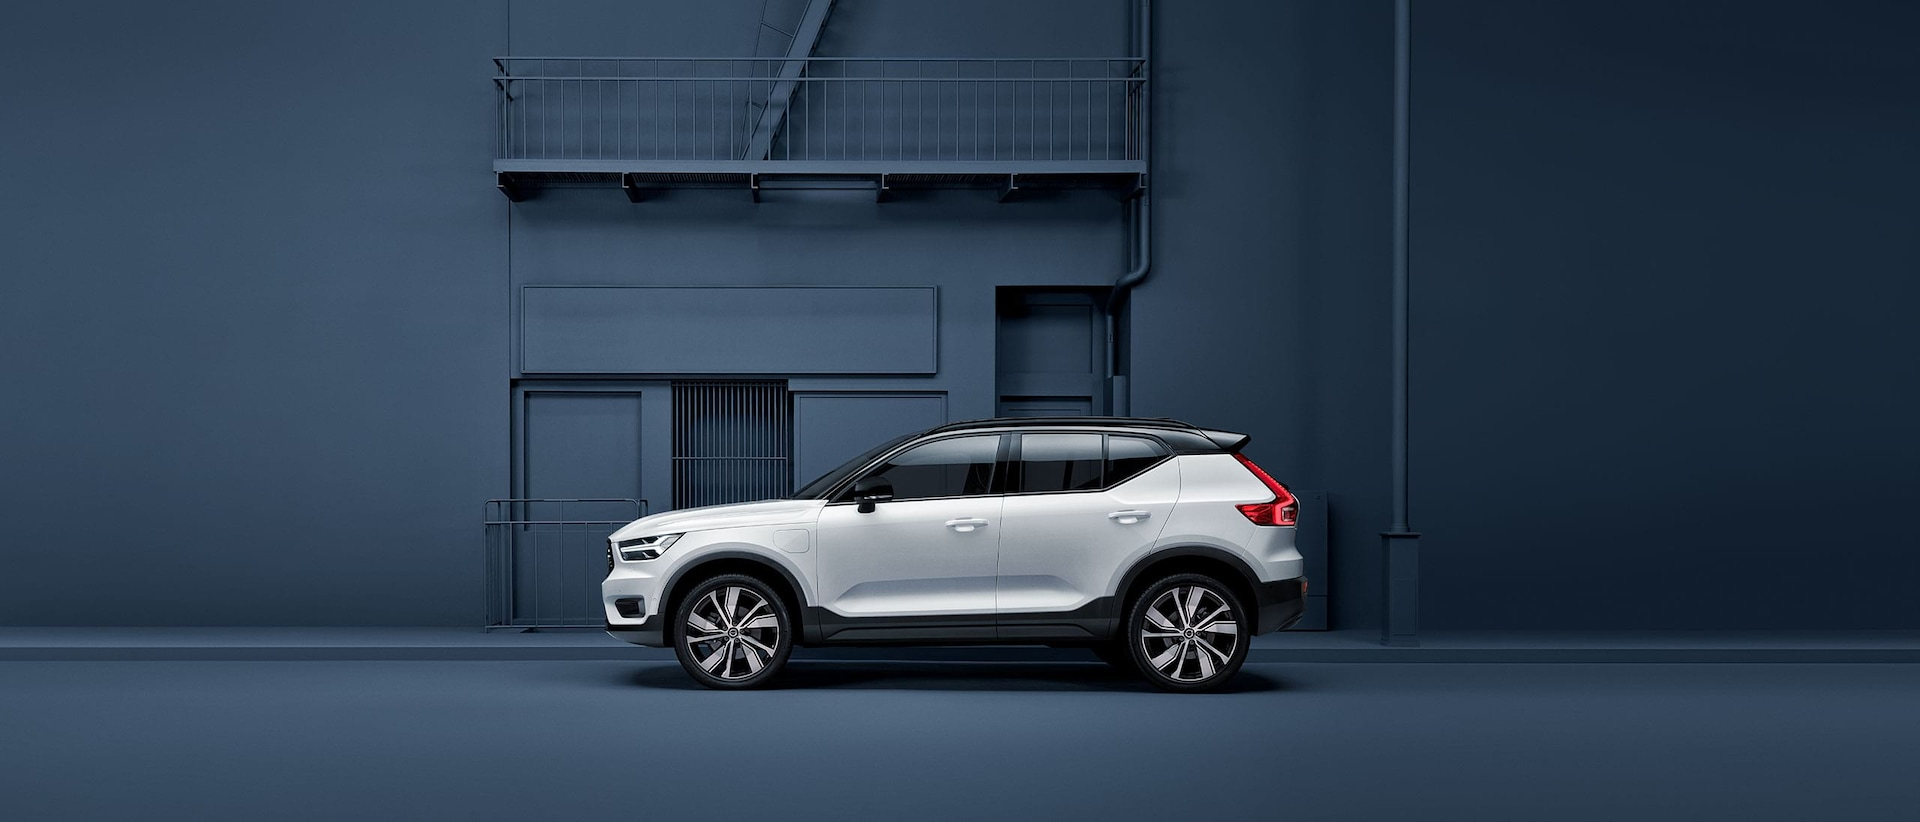 A white Volvo XC40 Recharge plug-in hybrid stands parked alongside a blue facade.